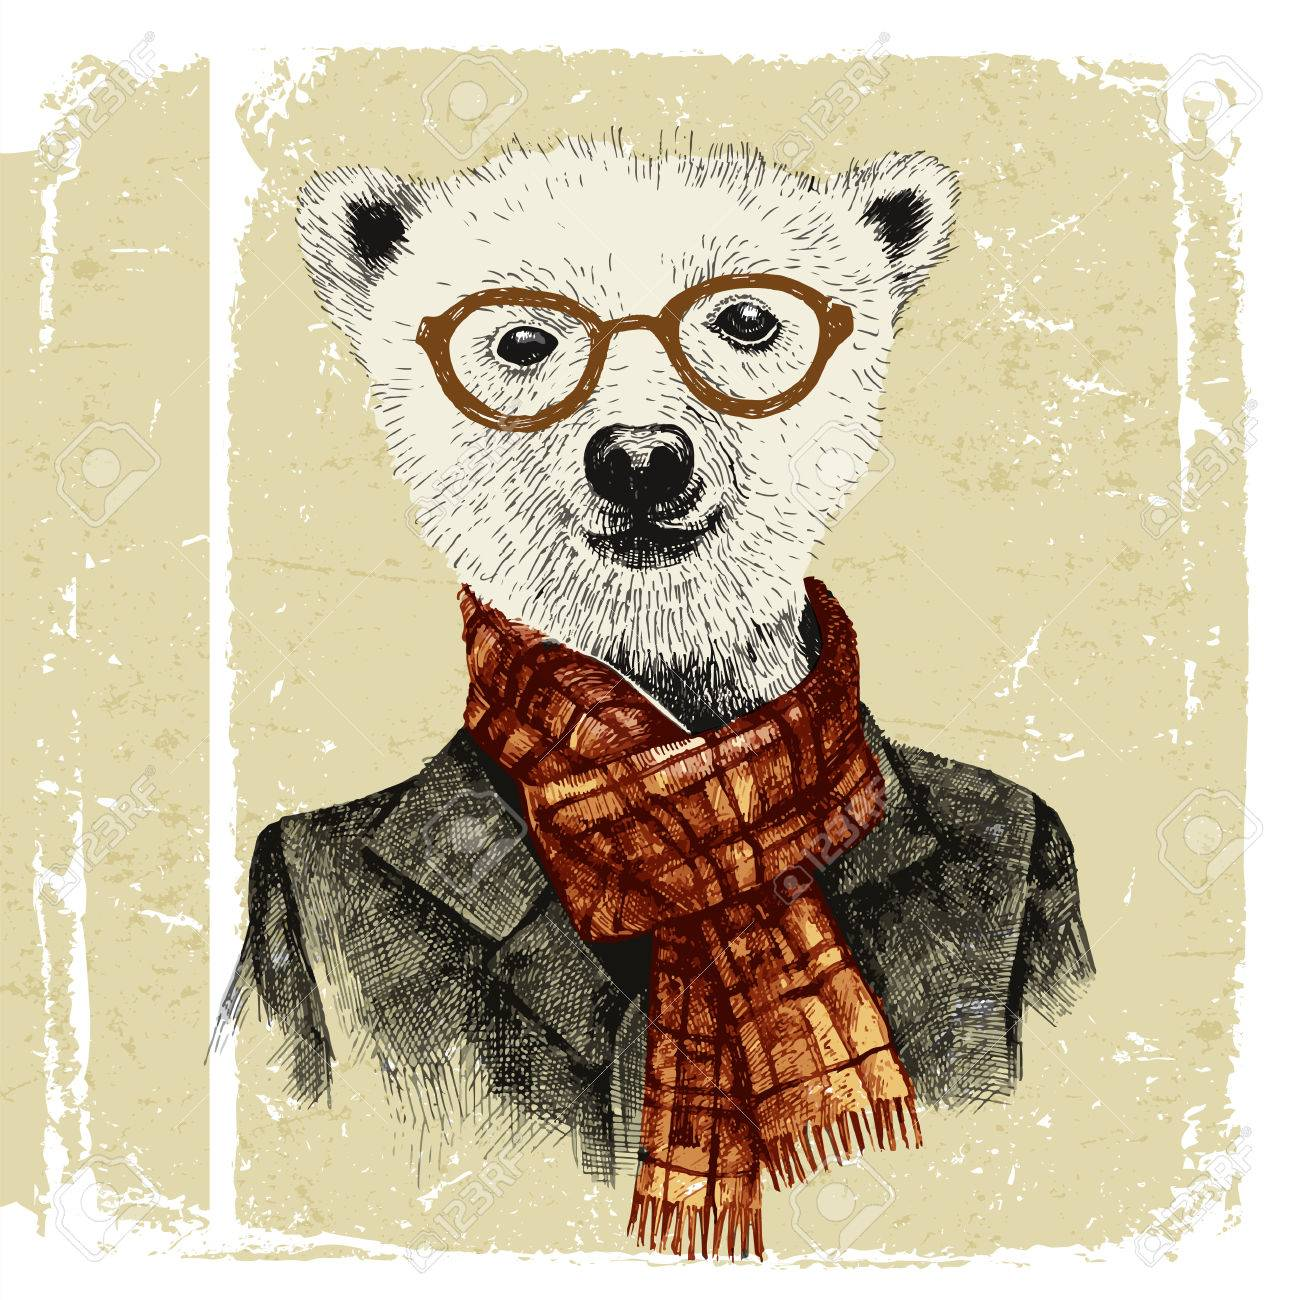 Hand drawn dressed up hipster bear in glasses in vintage style - 43870913